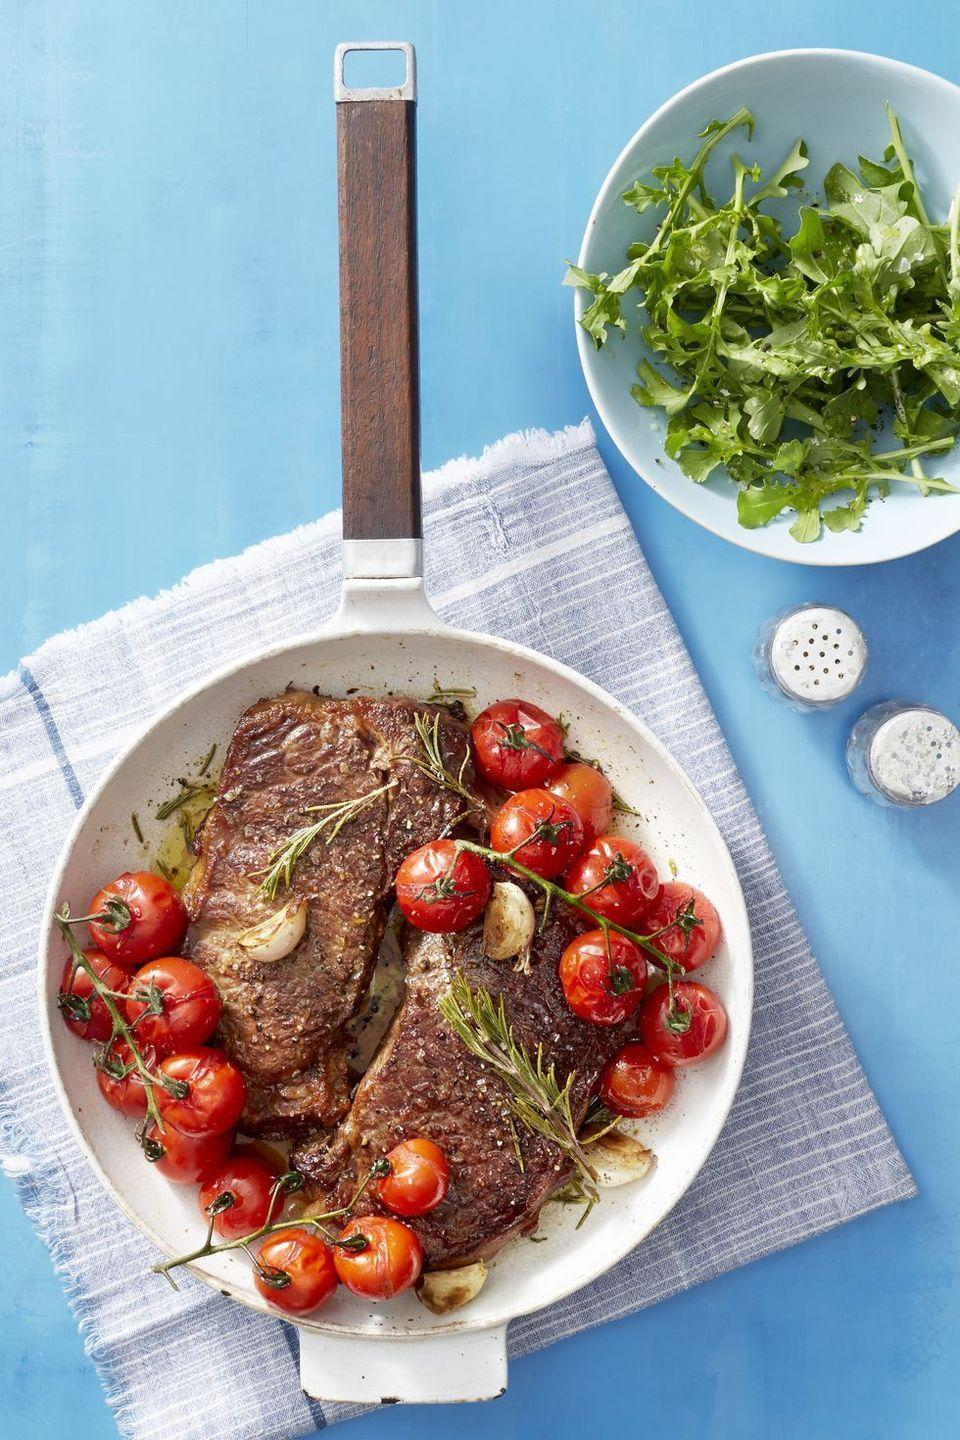 """<p>Grilled tomatoes and a side salad add some light, fresh flavor to this steak dinner.</p><p><em><em><a href=""""https://www.goodhousekeeping.com/food-recipes/easy/a22729431/seared-steak-with-blistered-tomatoes-recipe/"""" rel=""""nofollow noopener"""" target=""""_blank"""" data-ylk=""""slk:Get the recipe for Seared Steak with Blistered Tomatoes »"""" class=""""link rapid-noclick-resp"""">Get the recipe for Seared Steak with Blistered Tomatoes »</a></em></em></p>"""